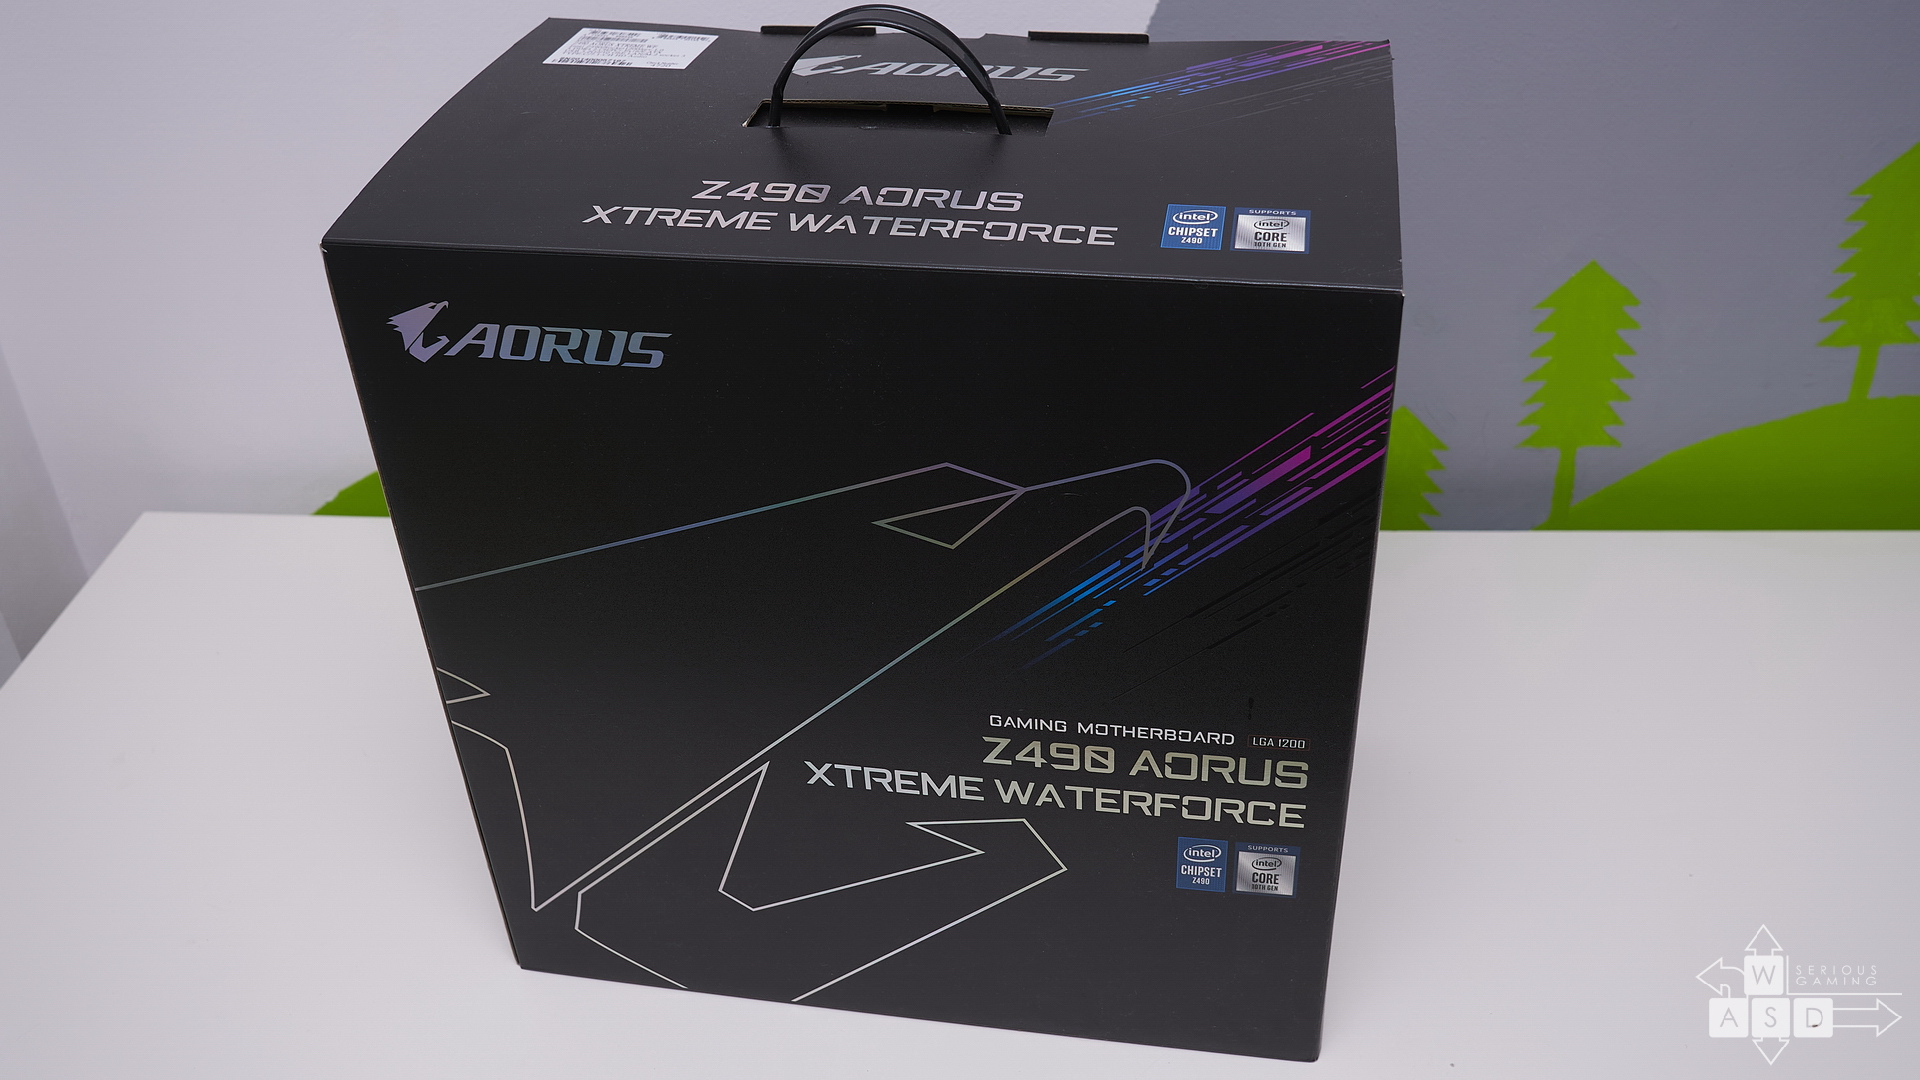 Gigabyte Z490 Aorus Extreme Waterforce review | WASD